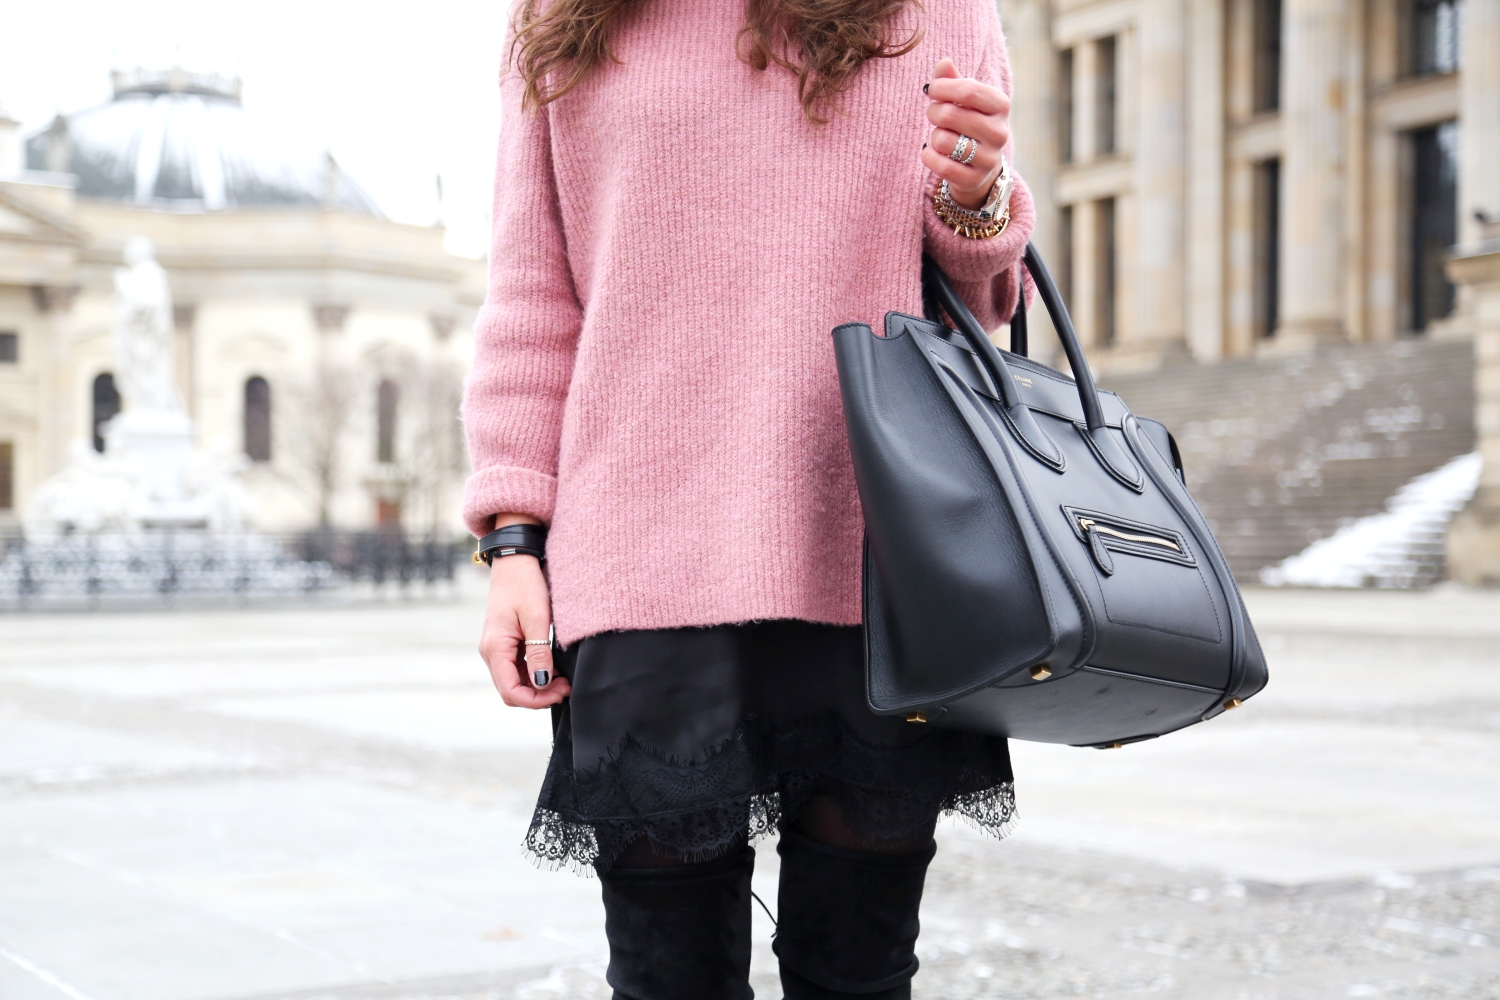 berlin-fashion-week-look-winter-style-knit-overknees